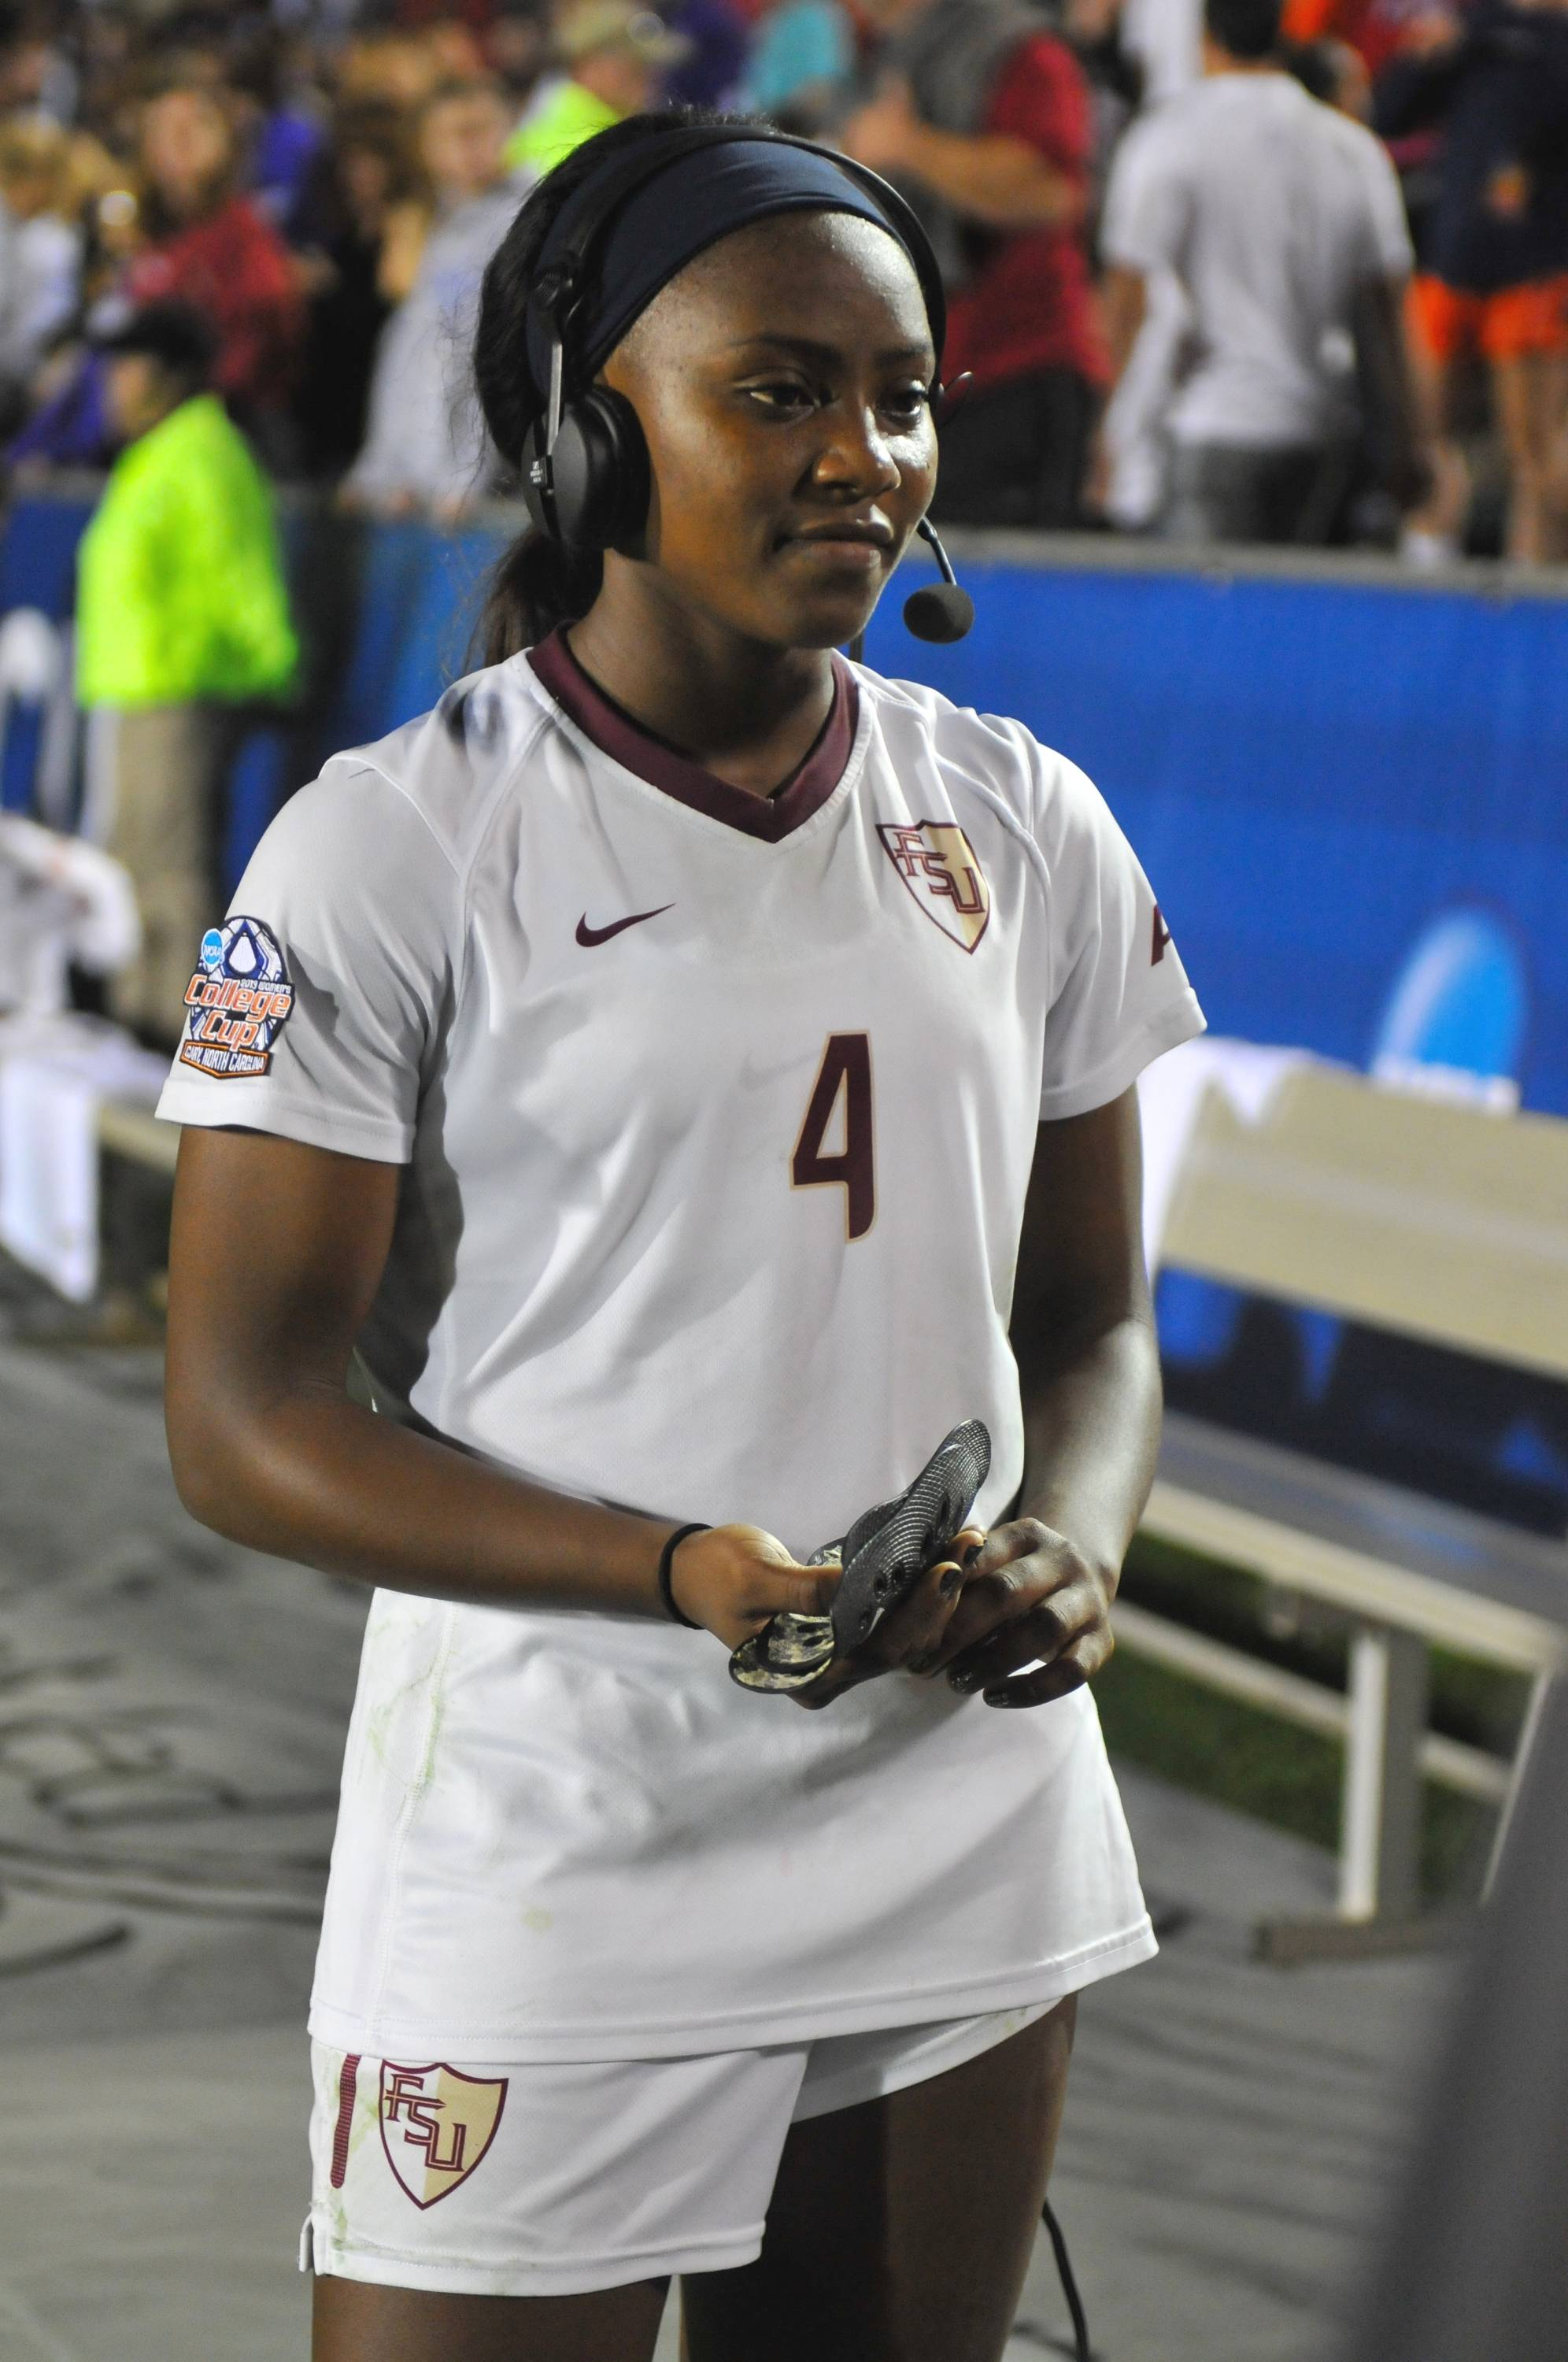 Jamia Fields speaks to ESPN after the match